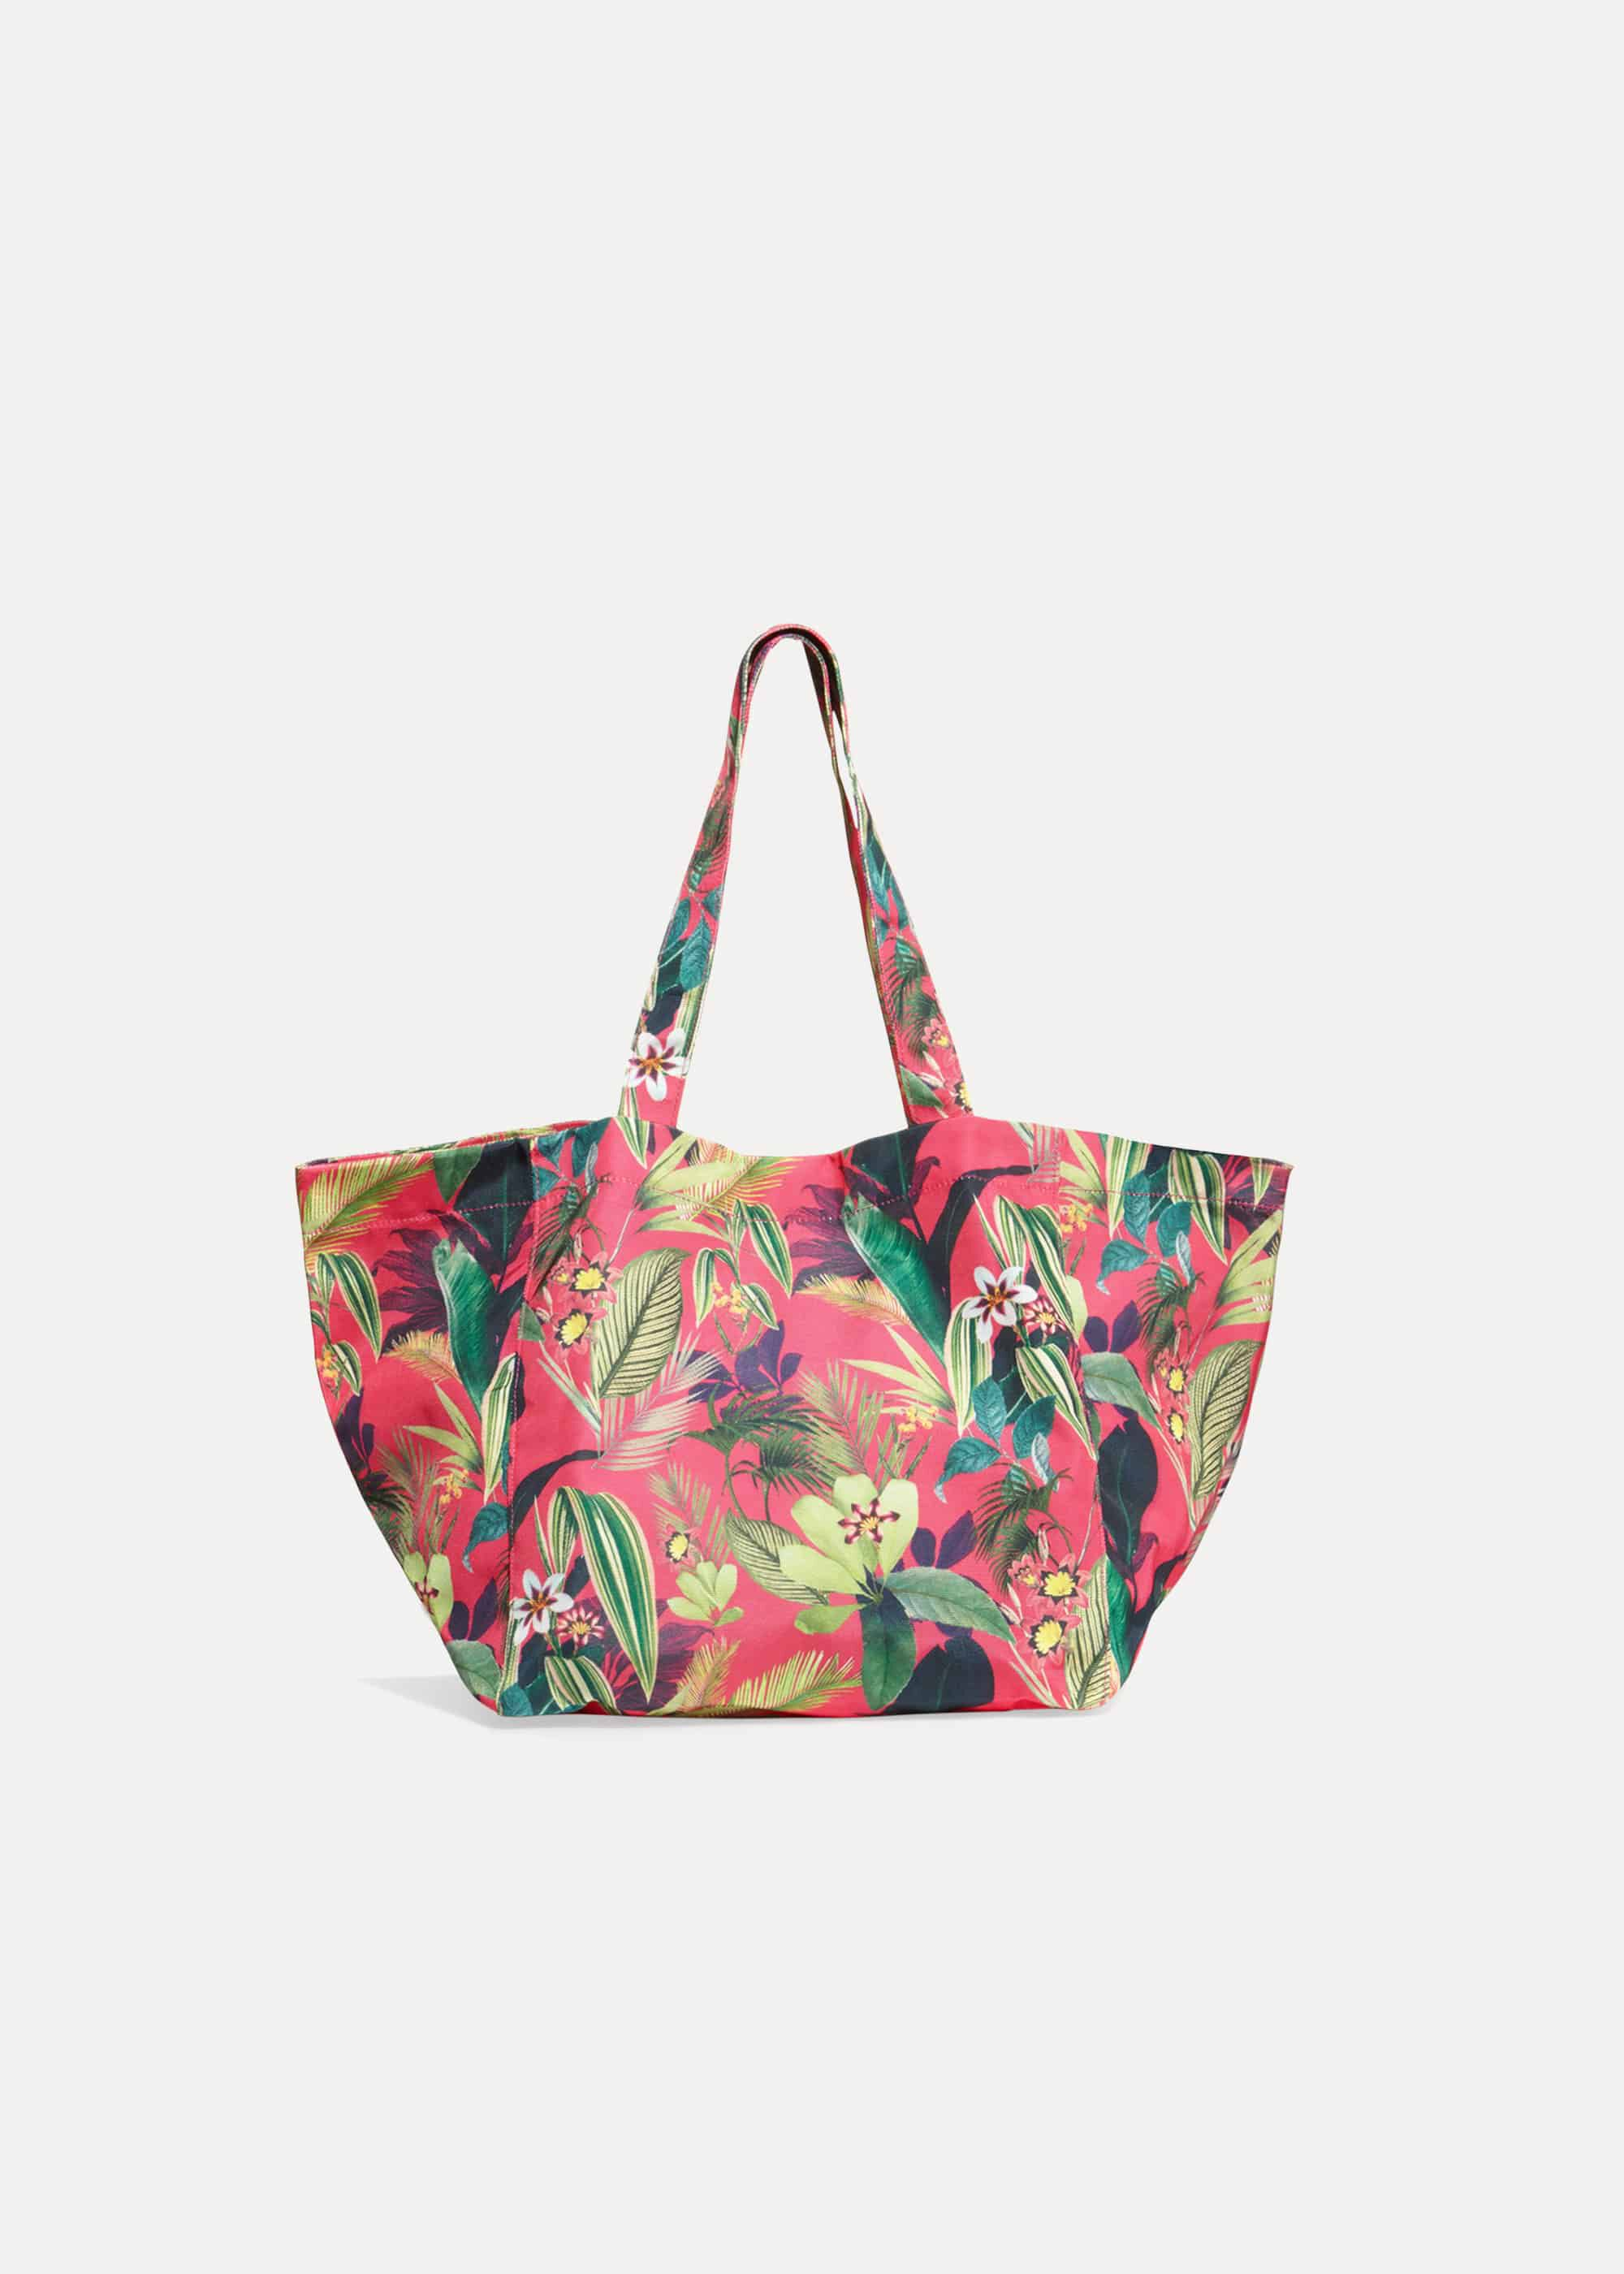 Phase Eight Amelia Floral Tote Bag, Multicoloured, Bag